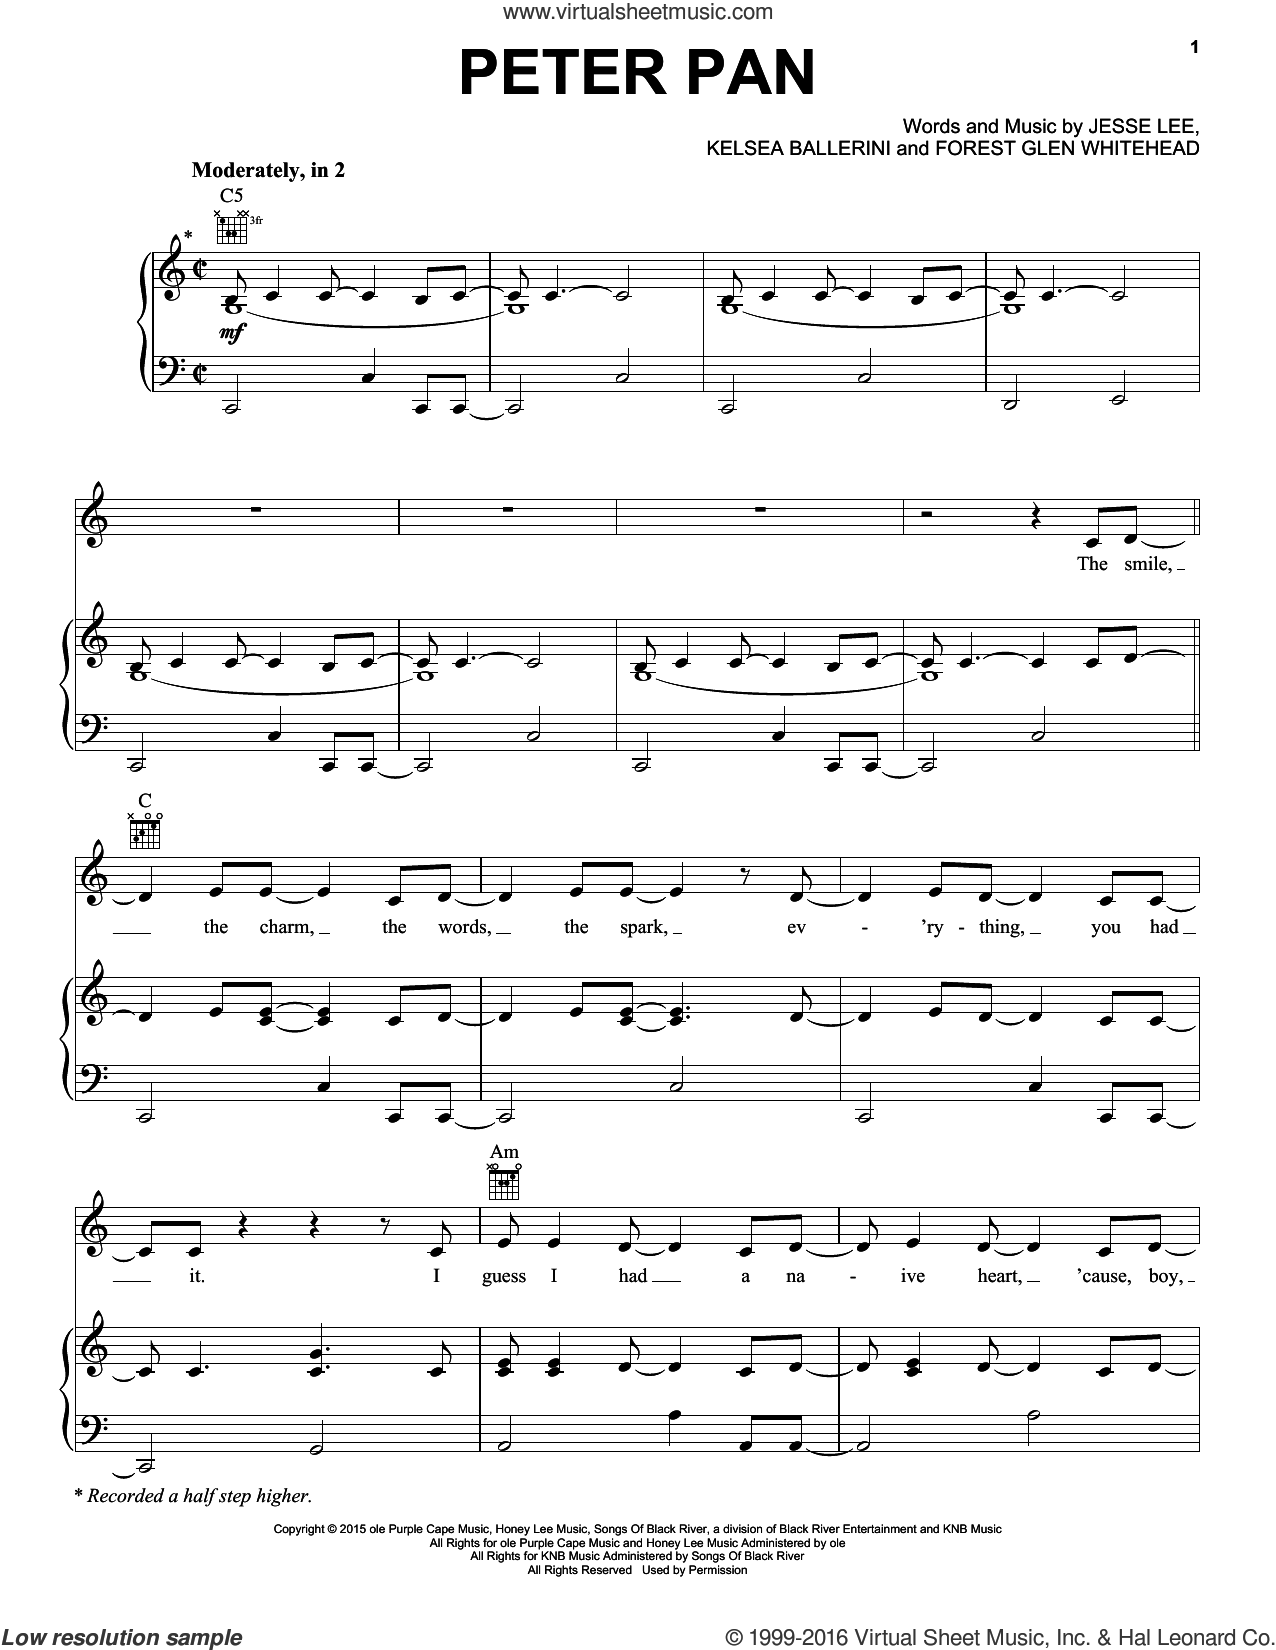 Peter Pan sheet music for voice, piano or guitar by Kelsea Ballerini, Kelsey Ballerini, Forest Glen Whitehead and Jesse Lee, intermediate skill level